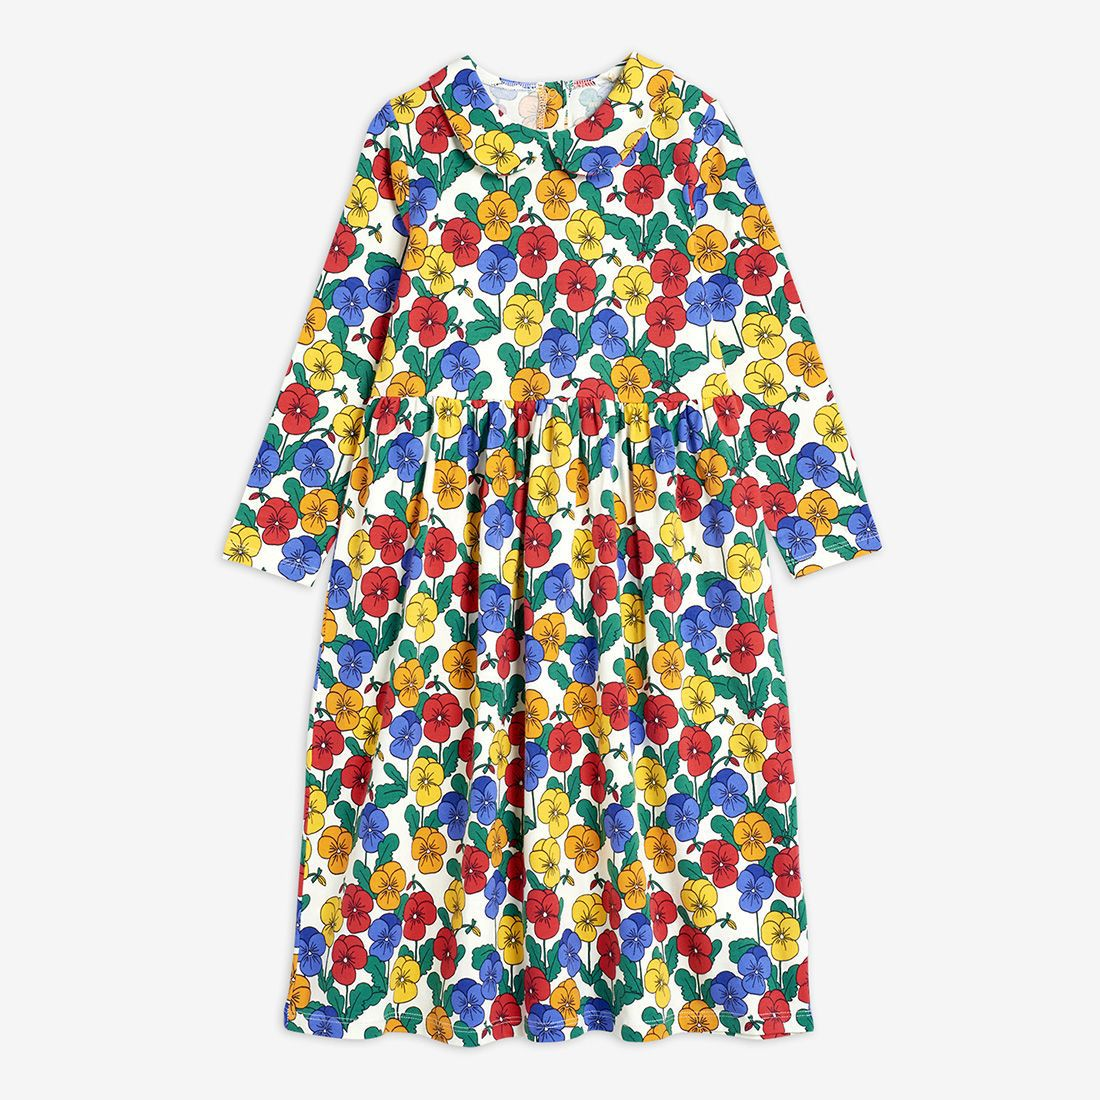 MINI Brand Kids Clothes T-shirts 2021 Autumn Girls Full Floral Pattern Dress Cotton Fashion Baby Romper Girl Boys Casual Pants 6